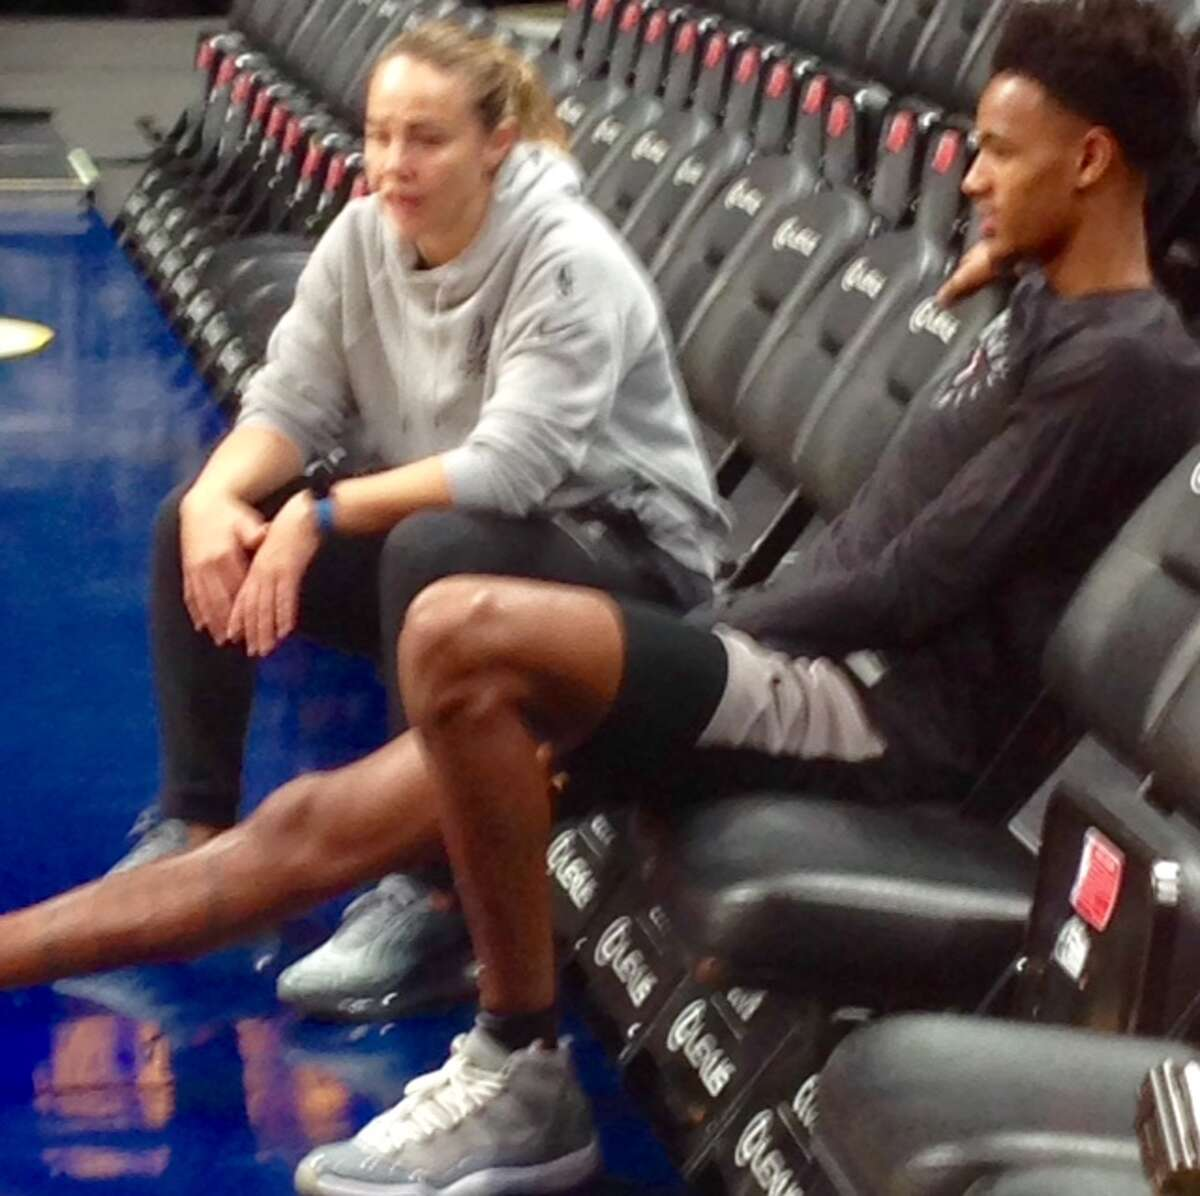 Spurs guard Dejounte Murray and assistant coach Becky Hammon talk during practice in Denver on Tuesday, April 16, 2016, prior to Game 2 of the first round of the Western Conference playoffs between the Spurs and the Nuggets.